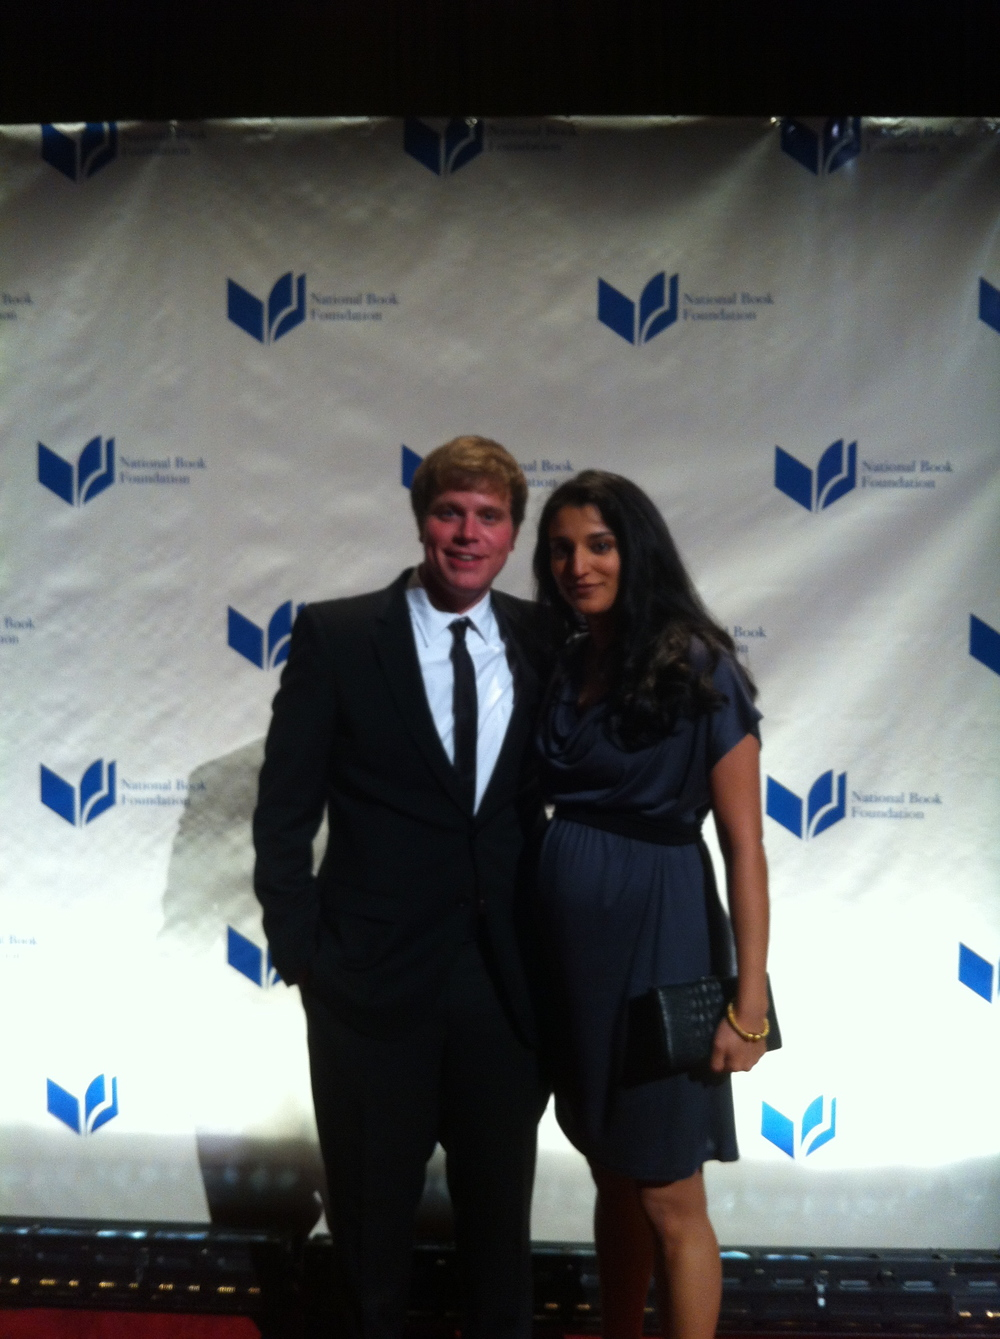 Whaley with editor Namrata Tripathi at National Book Awards, 2011.